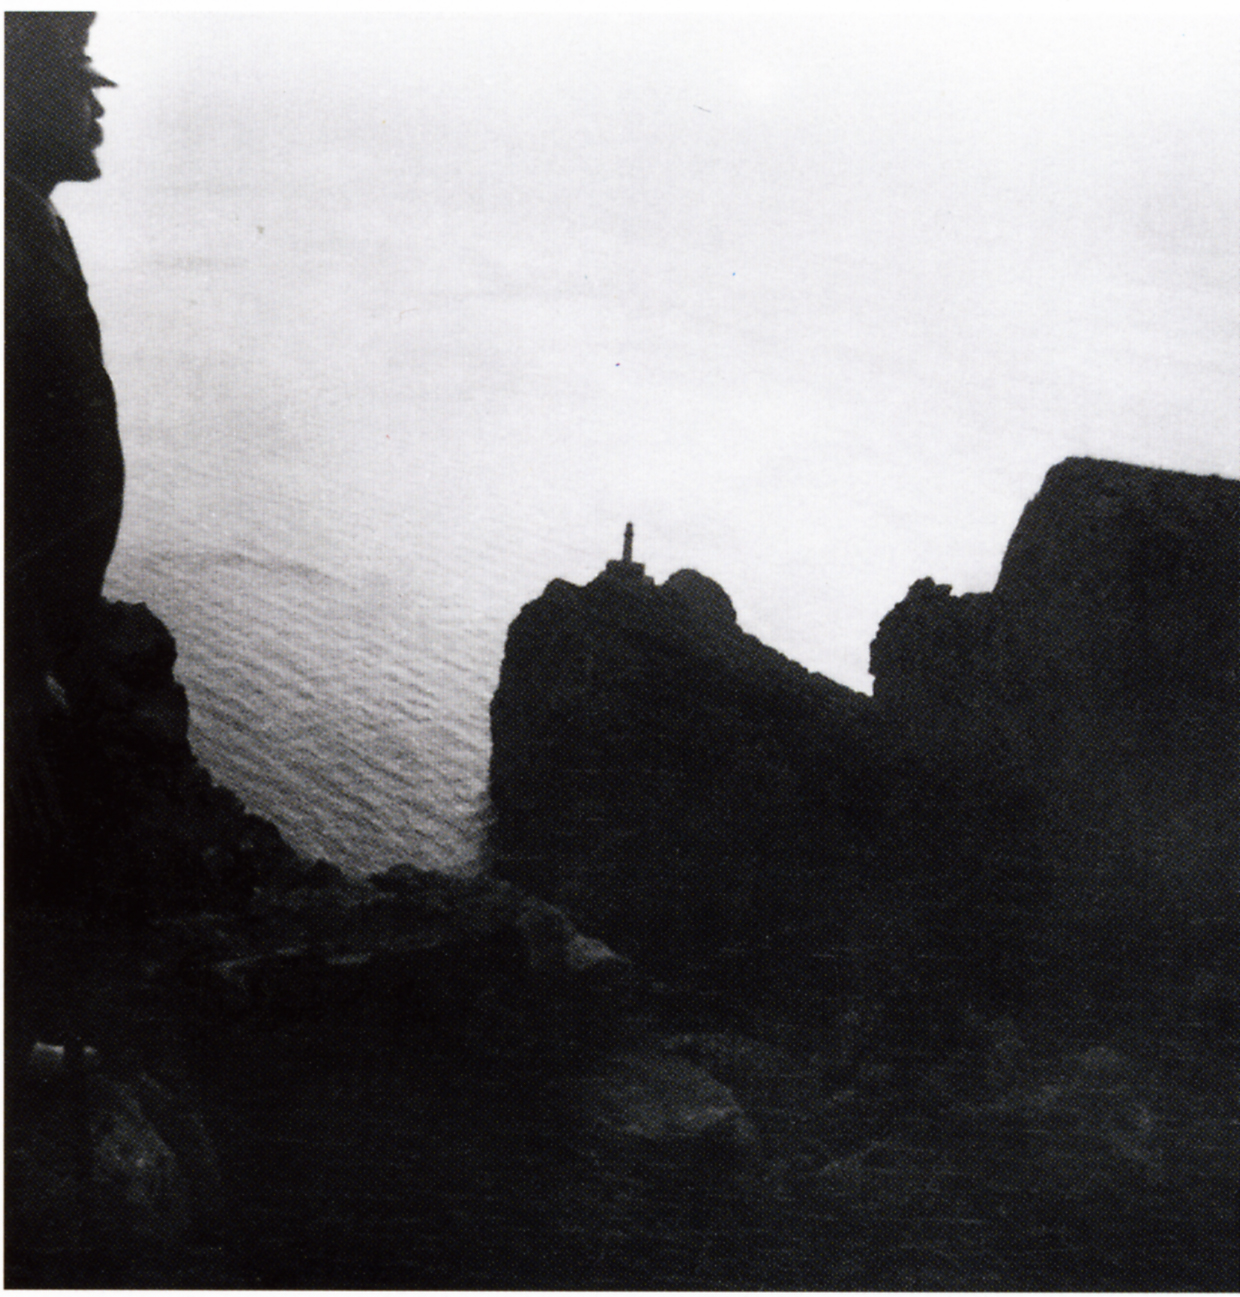 Axel Munthe overlooking the light house at Capri